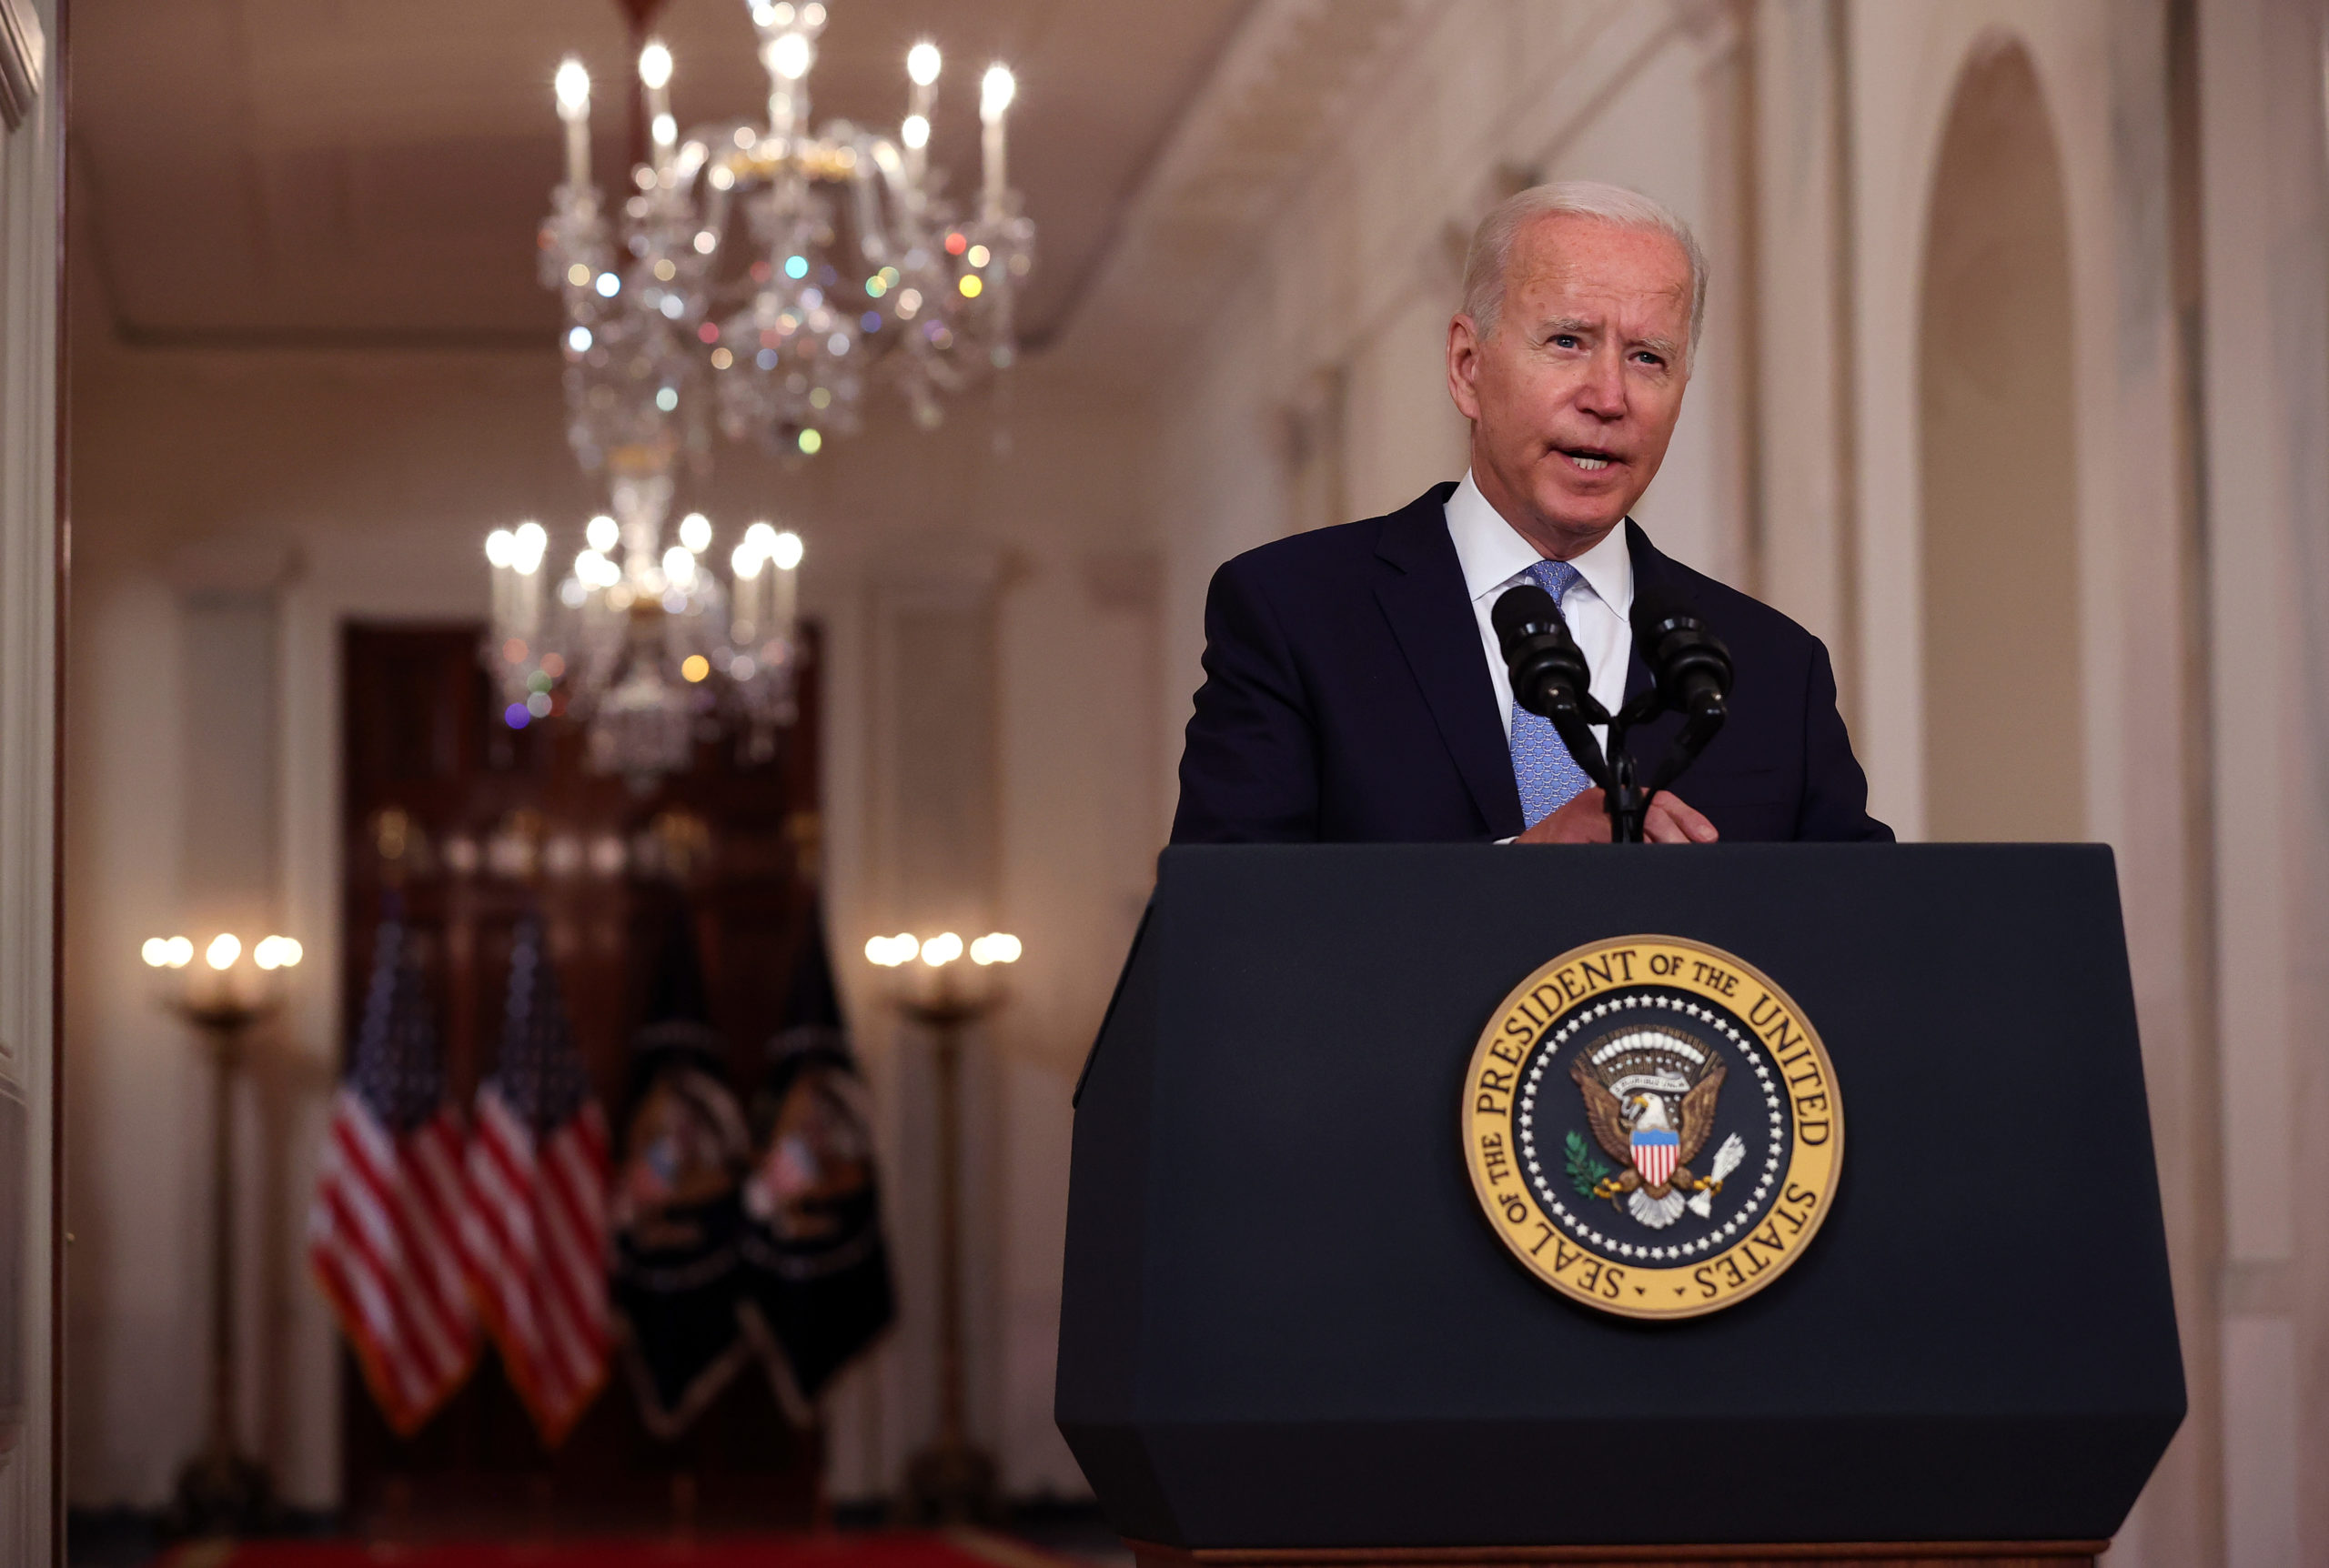 WASHINGTON, DC - AUGUST 31: U.S. President Joe Biden delivers remarks on the end of the war in Afghanistan in the State Dining Room at the White House on August 31, 2021 in Washington, DC. The last American military aircraft took off from Hamid Karzai Airport a few minutes before midnight in Kabul, marking the end of U.S. military presence in Afghanistan since the invasion following the attacks of September 11, 2001. (Photo by Chip Somodevilla/Getty Images)